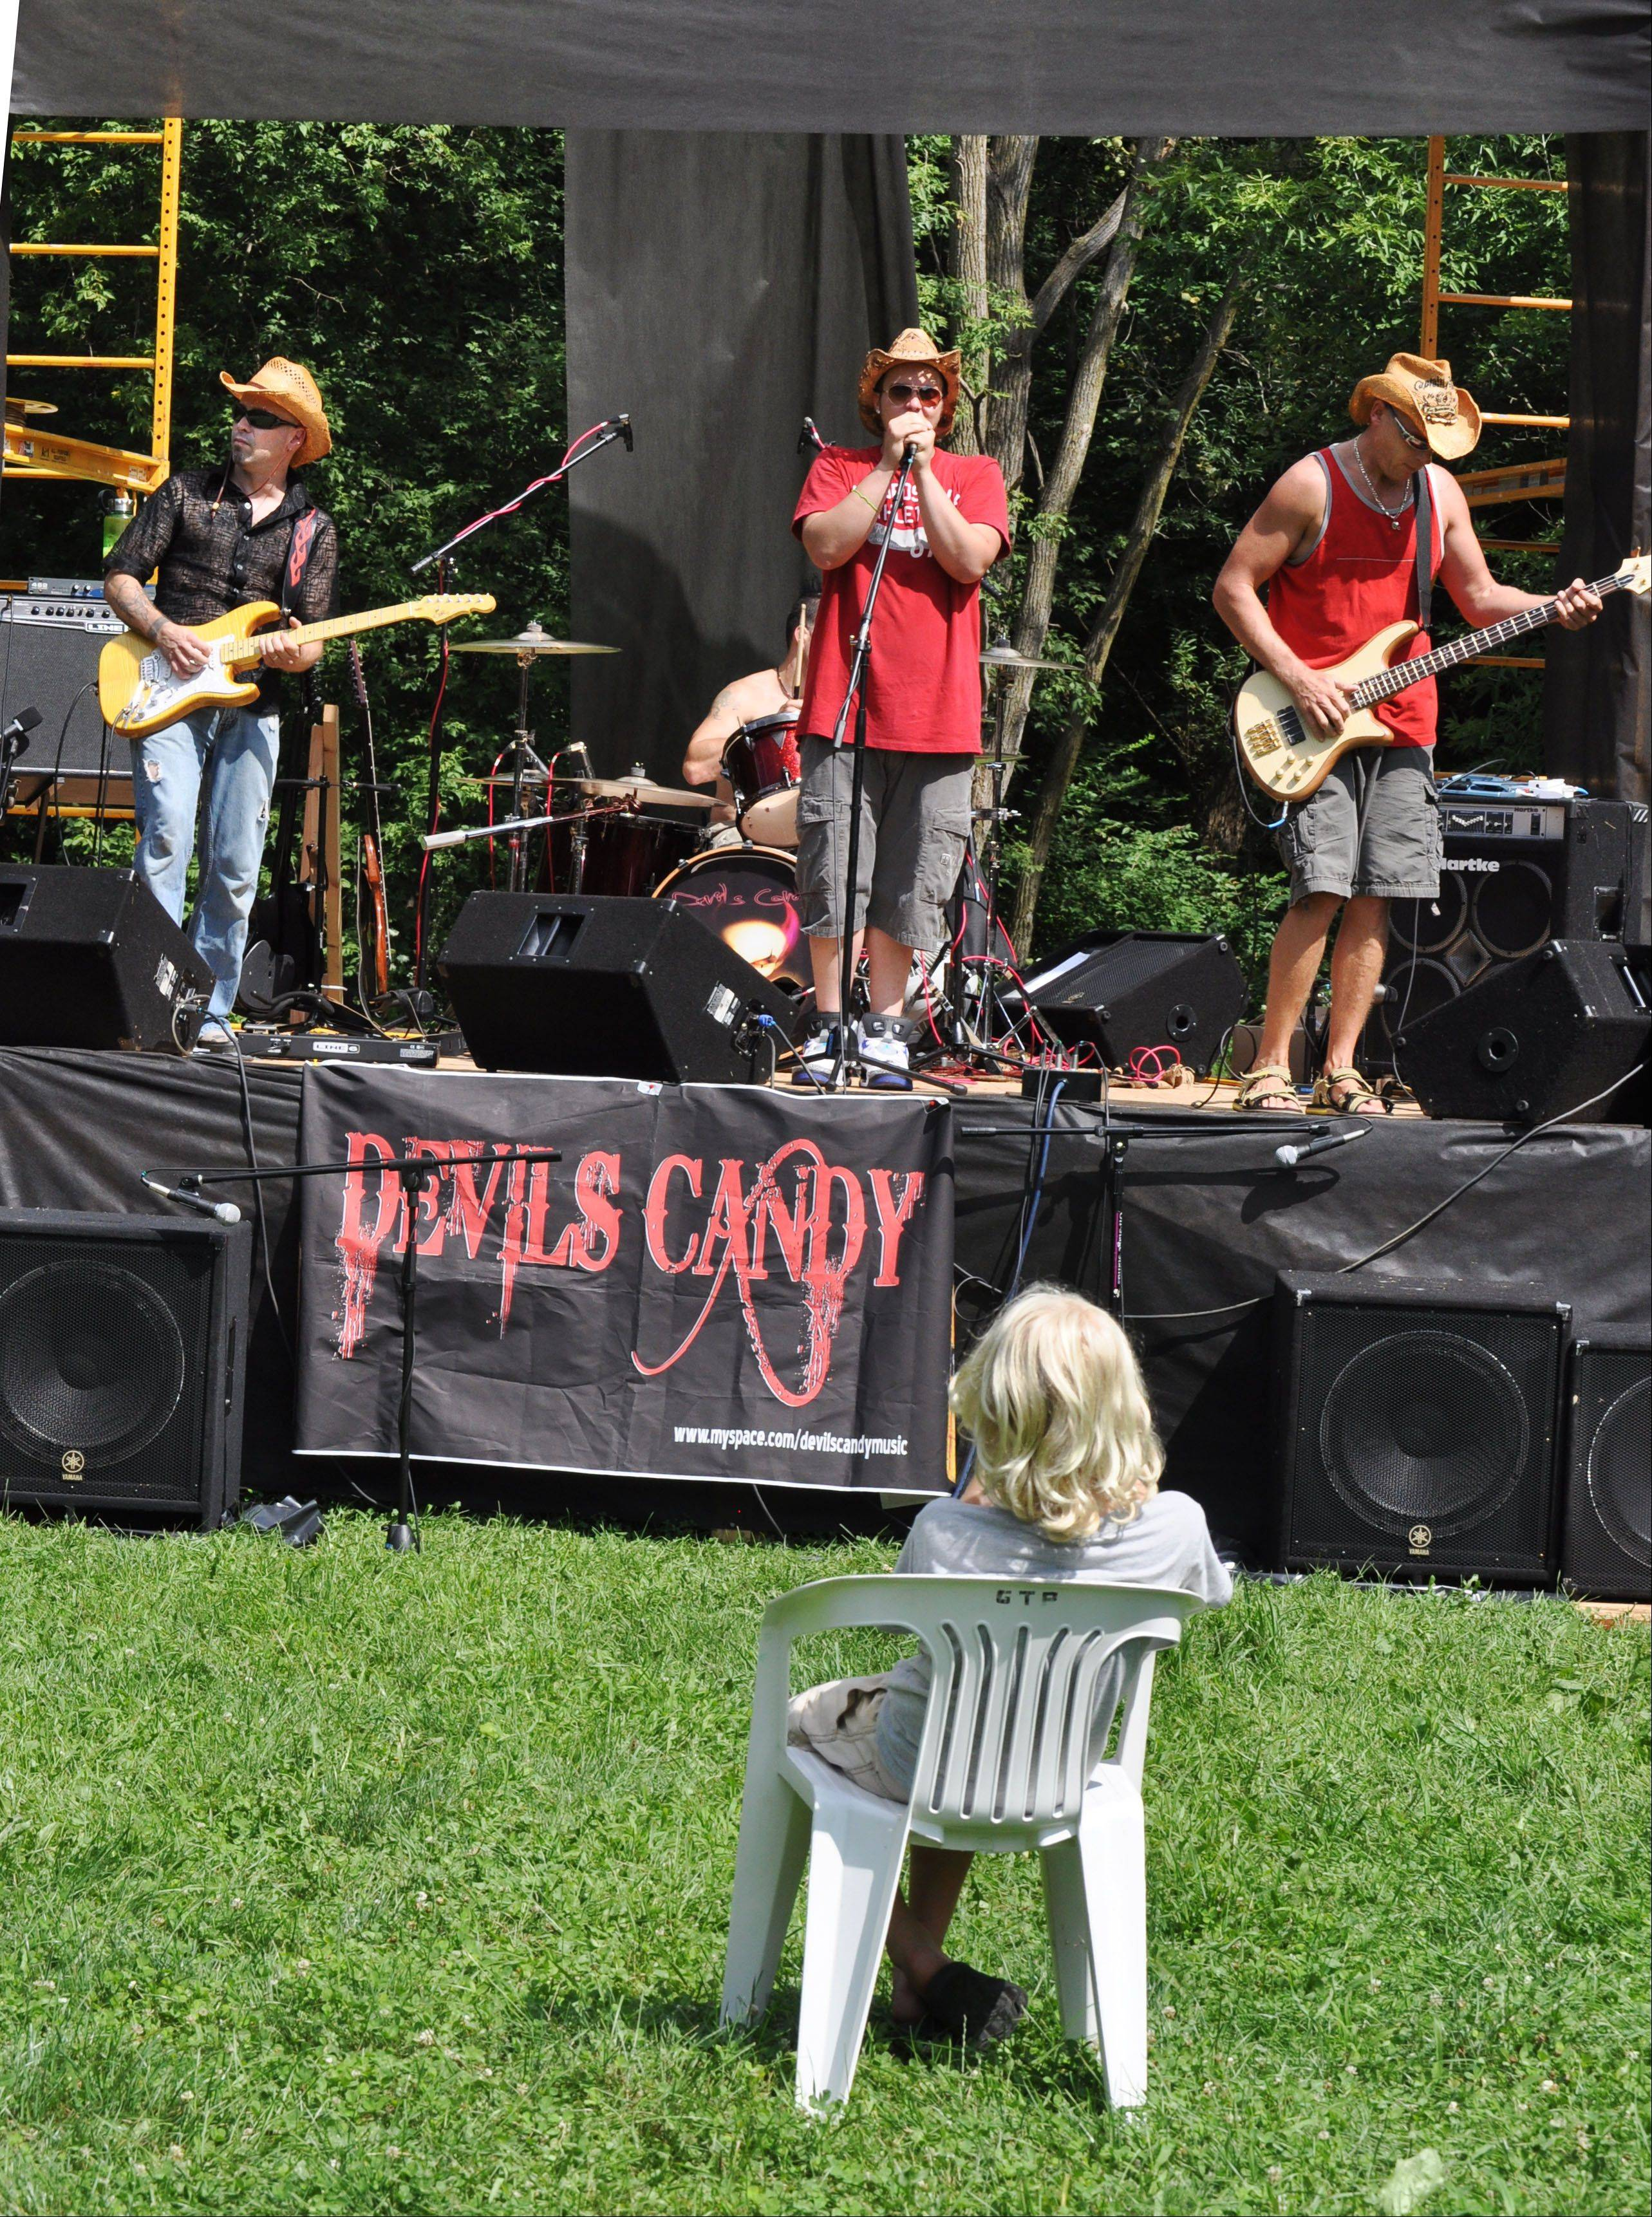 Elliot Bruno, 10, of Plainfield takes in Devil's Candy, a band playing at the Waking the Dead stage during the second annual Anonapalooza Family Summerfest in Geneva. This year's festival is set for July 30-31 and will feature 40 bands in an alcohol-free environment.